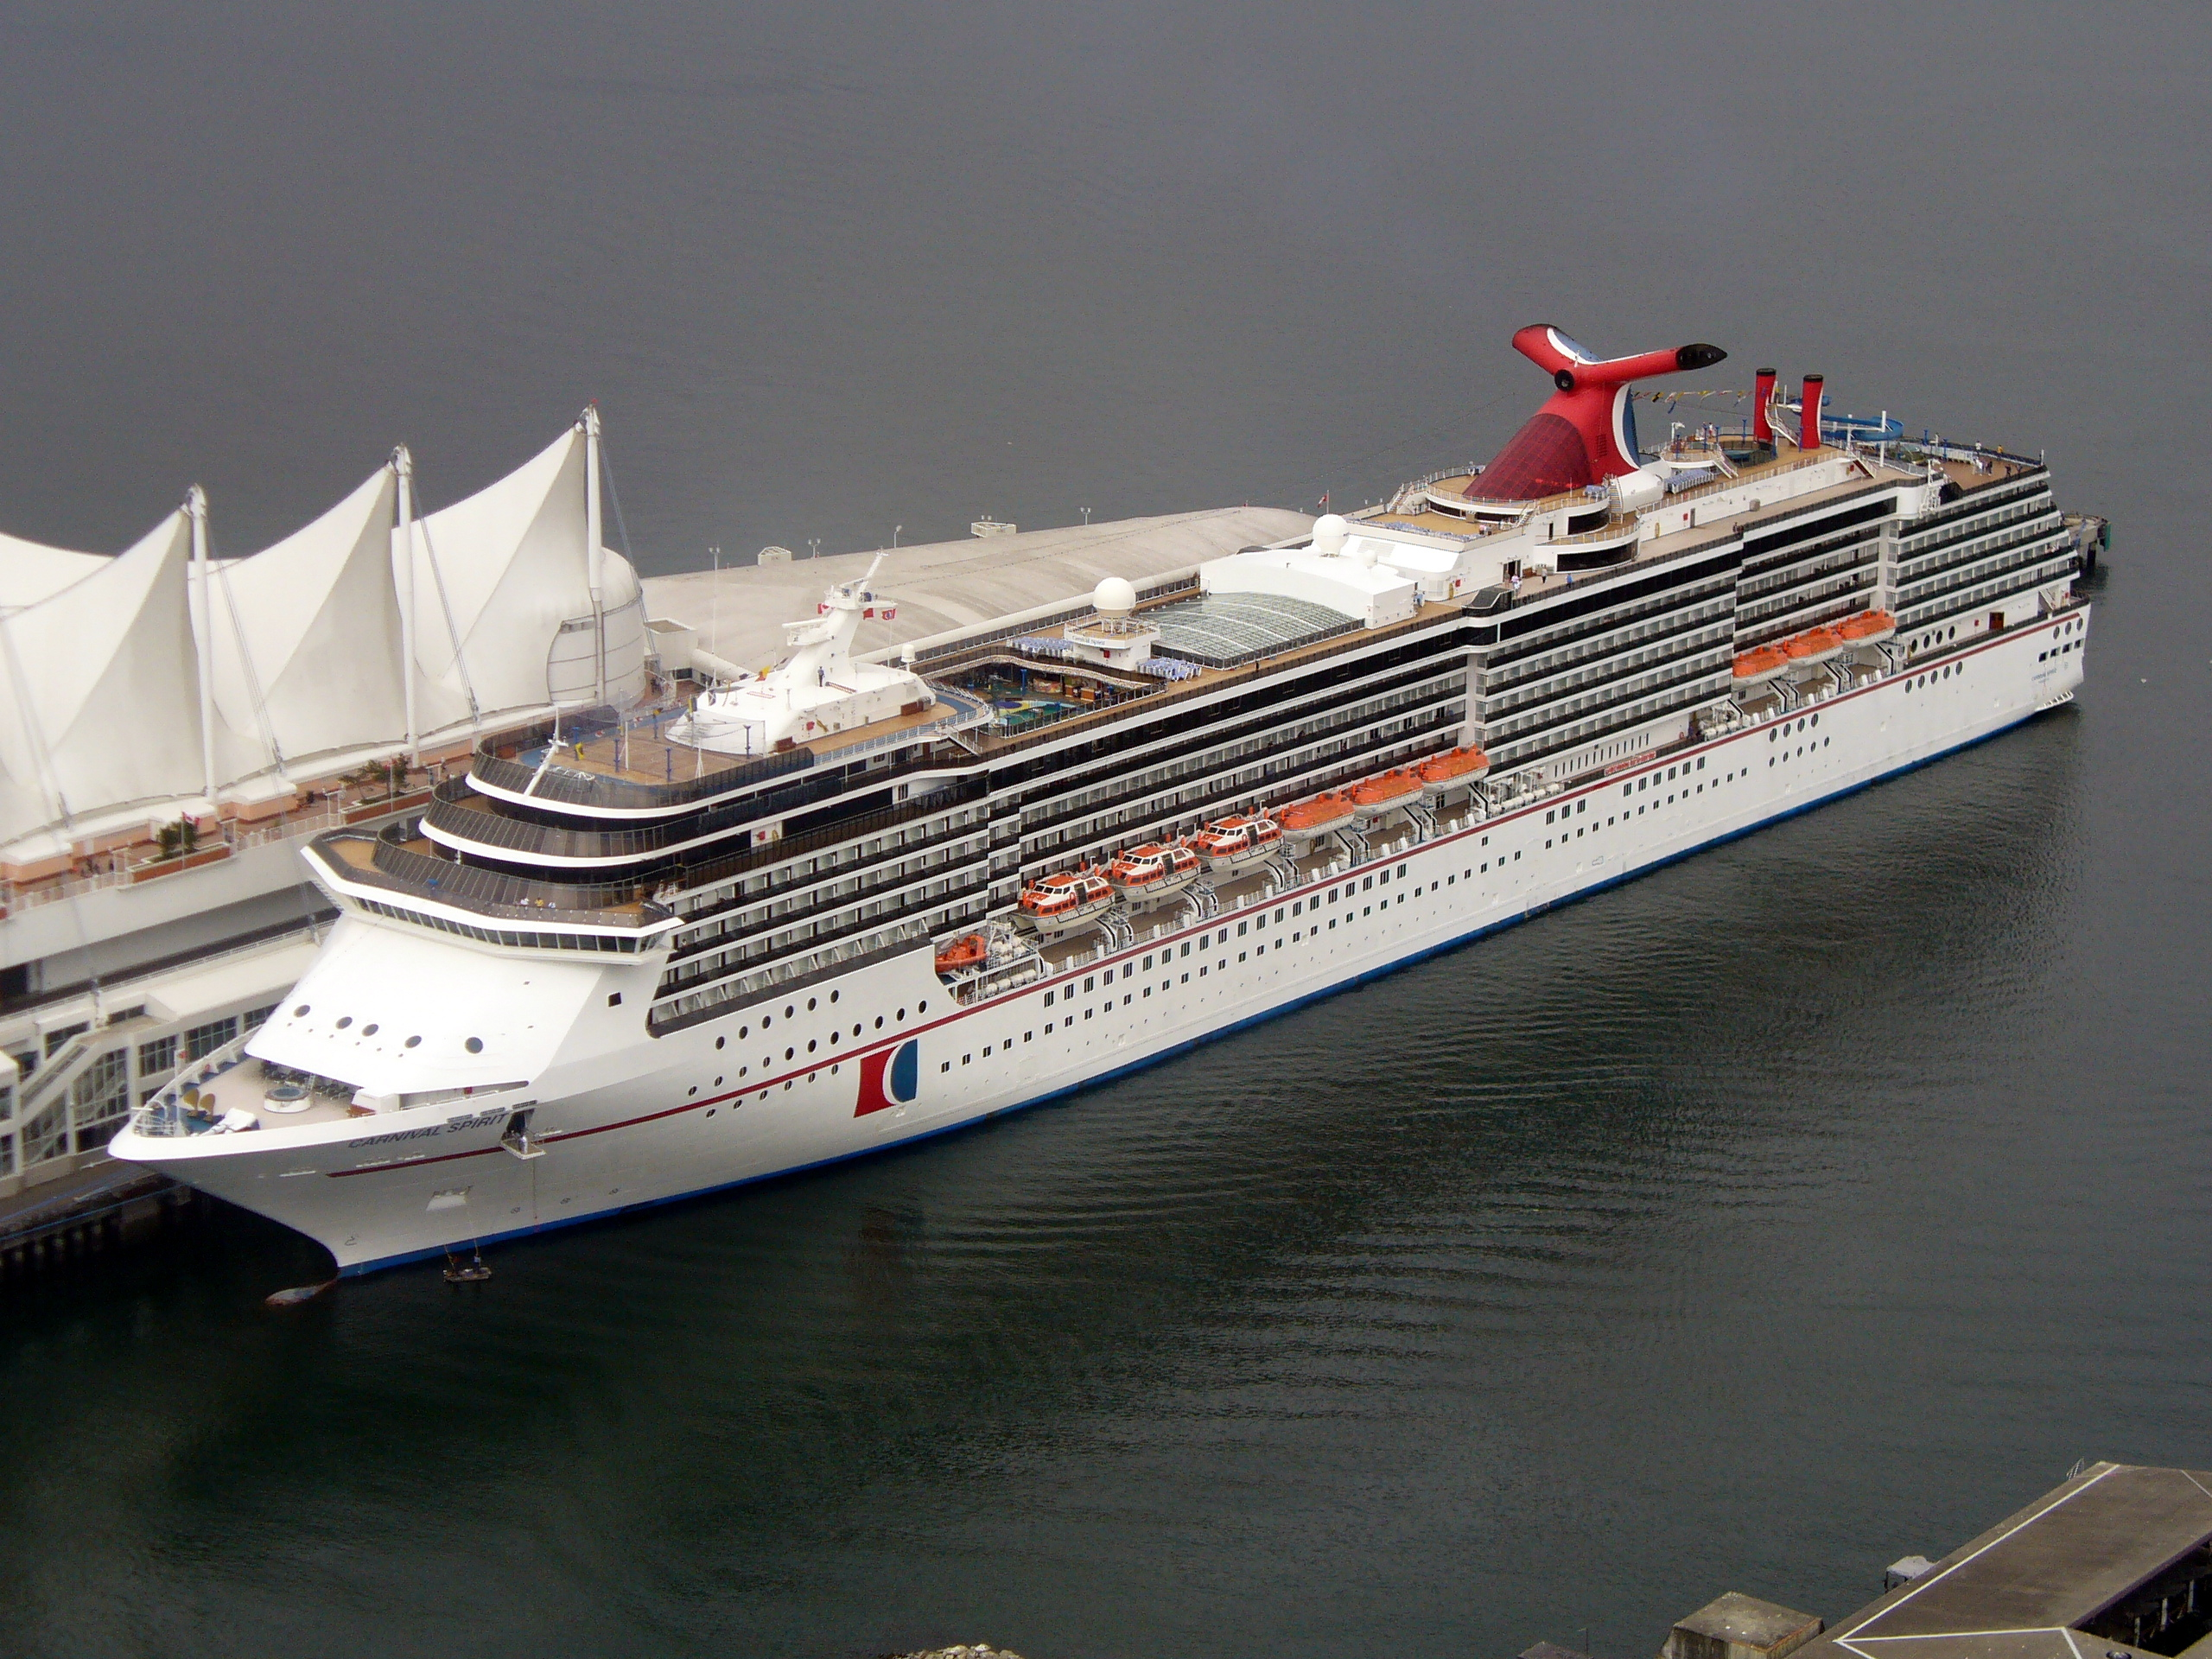 Carnival spirit Cruise Ship at Port of Vancouver ( 640x480 )